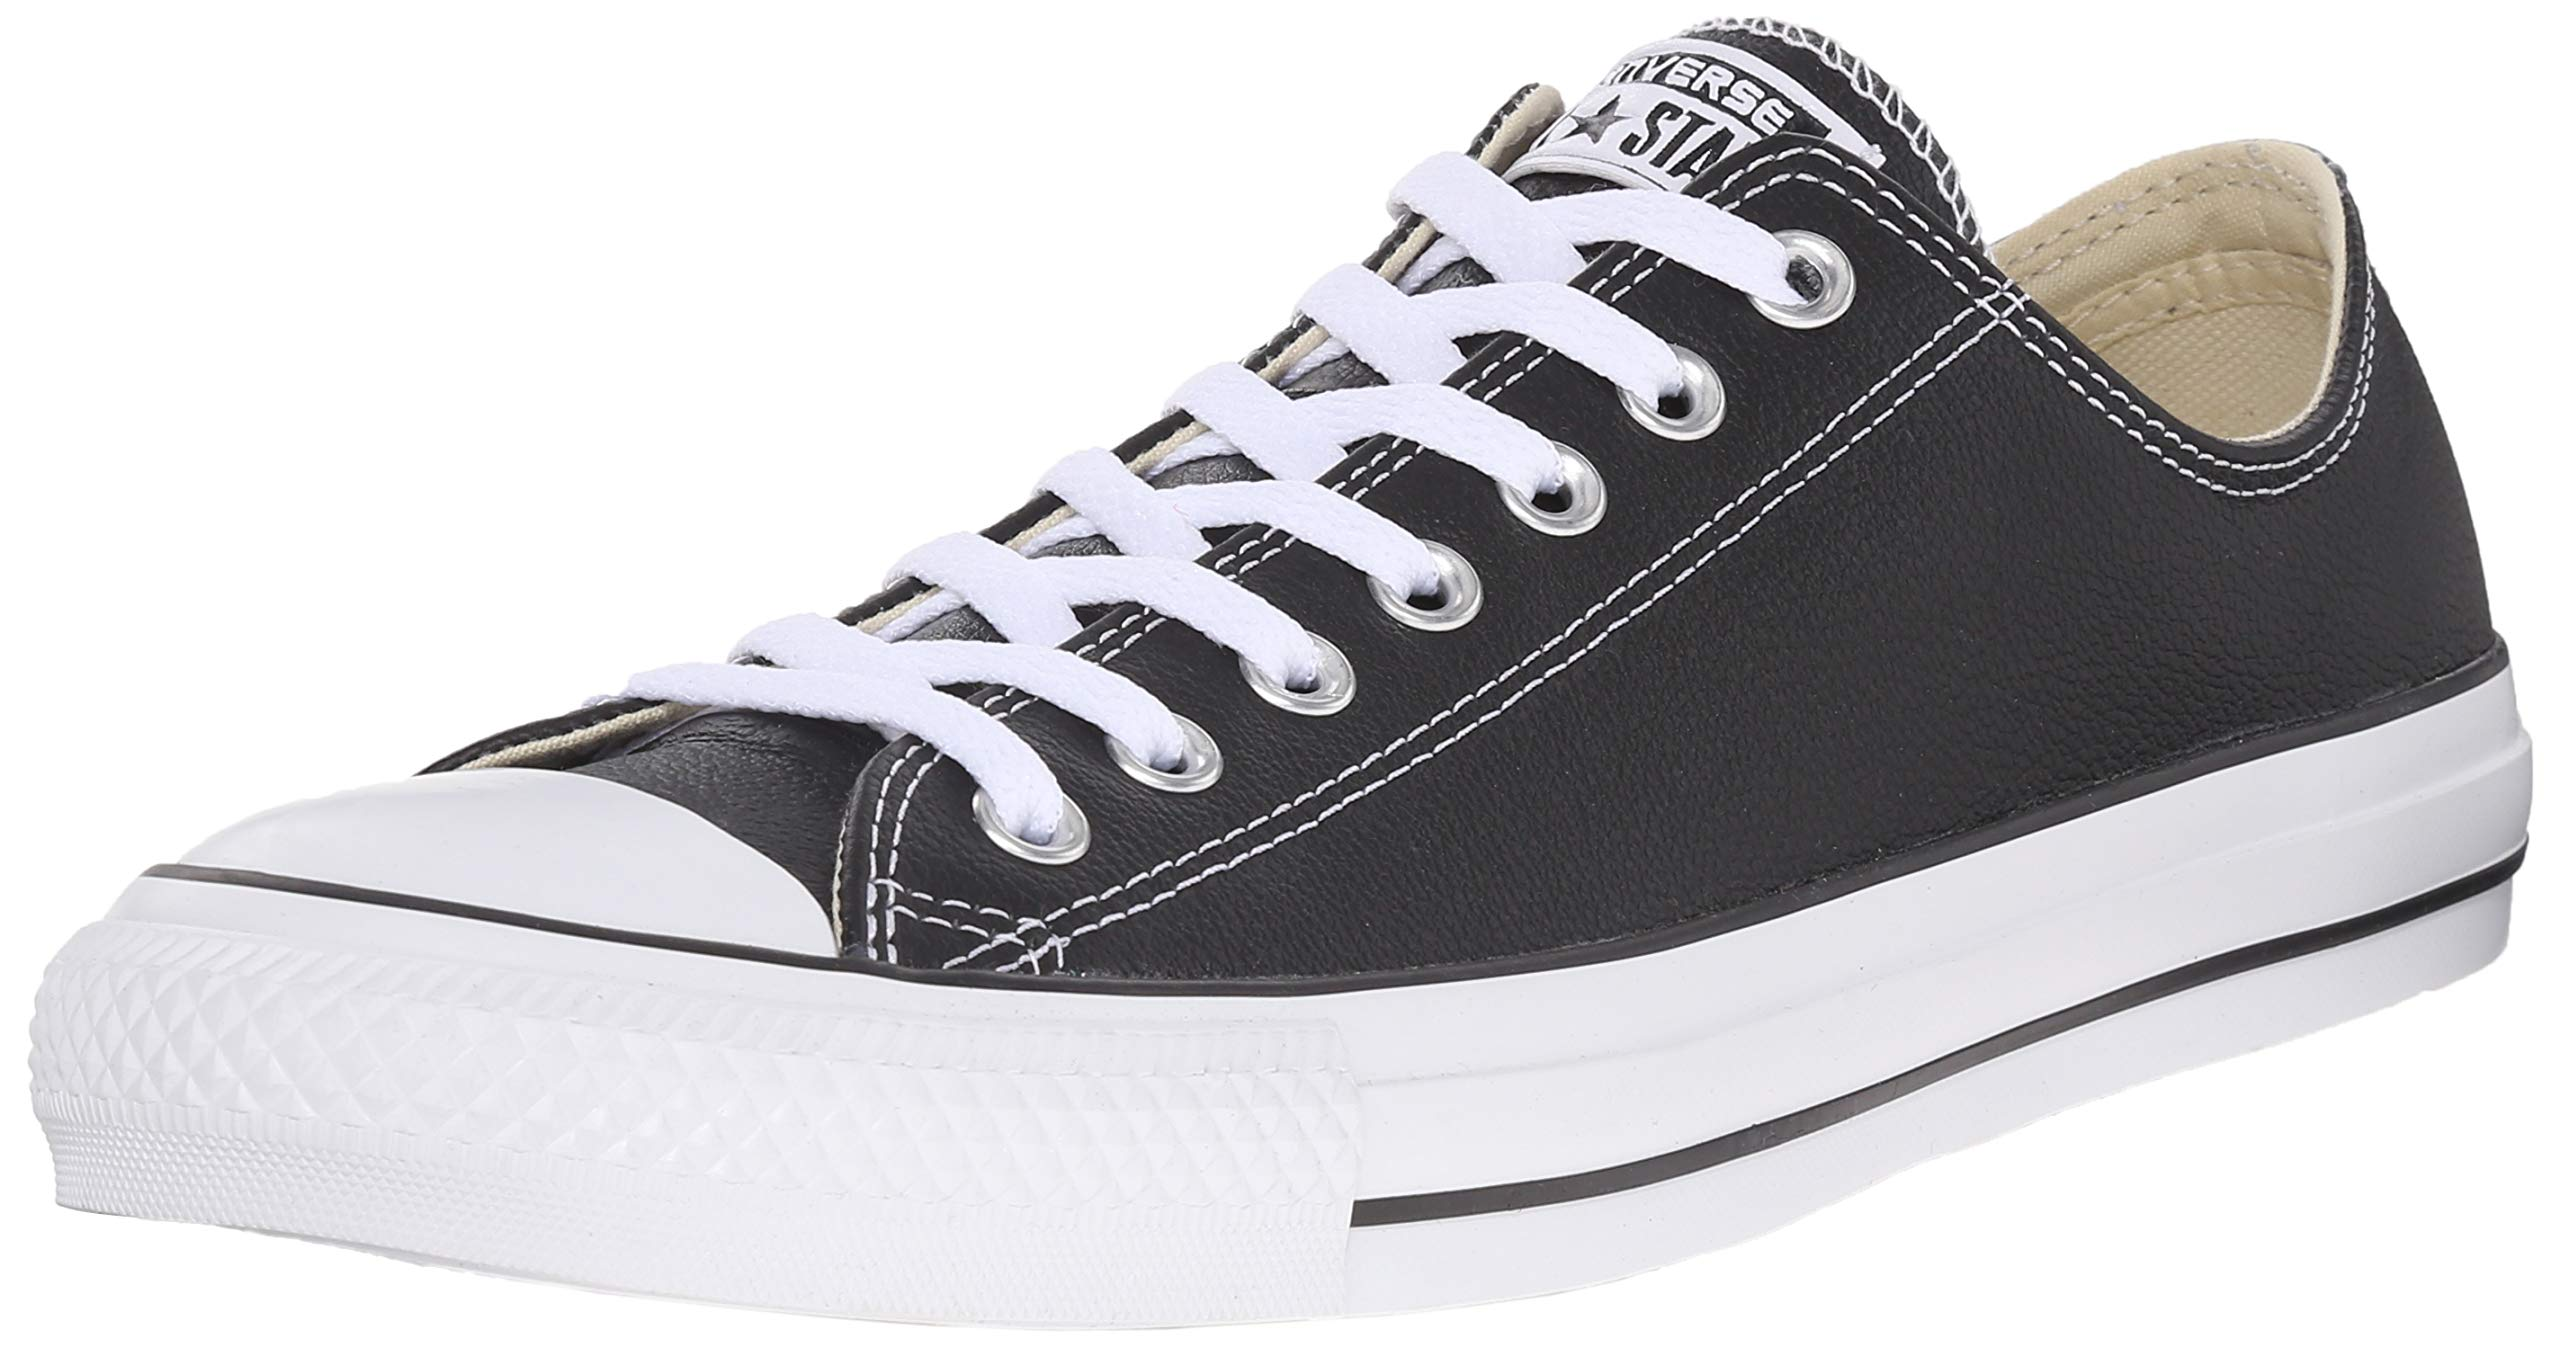 the latest 23b2f a32dc Galleon - Converse Chucks All Star Ox Sneaker Black M9166C, Size 39.5